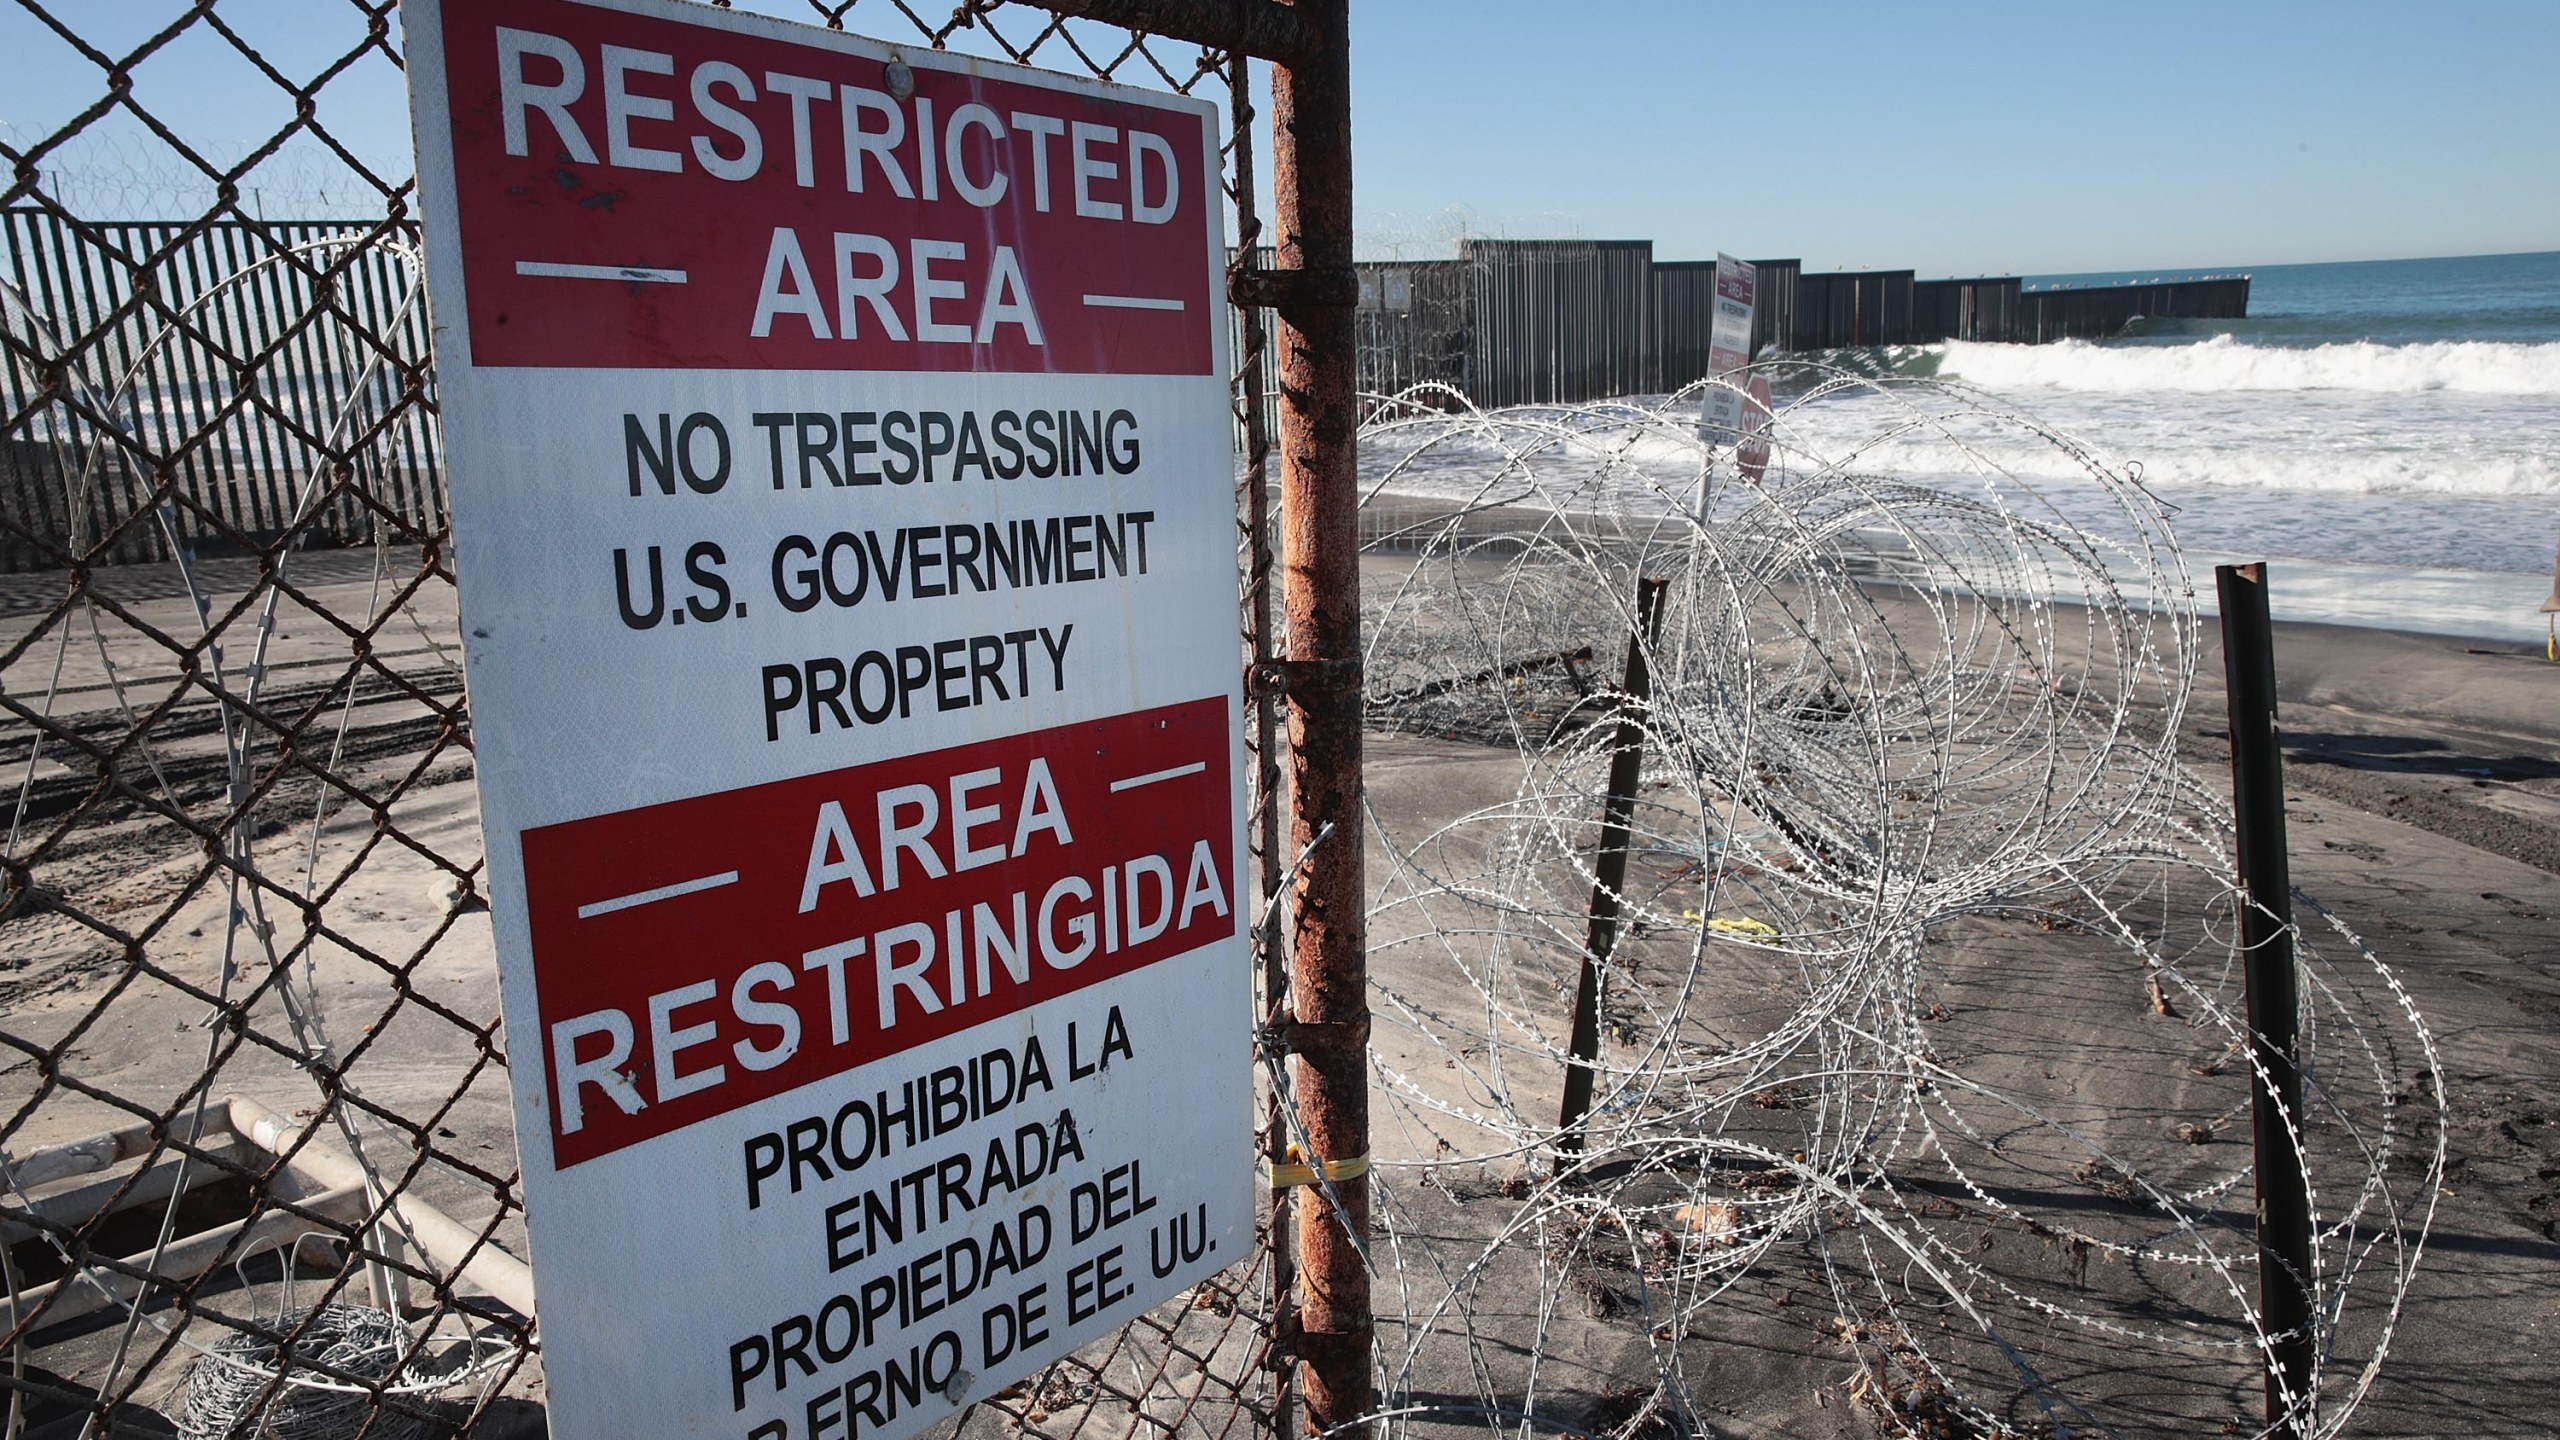 The Border Field State Park on the San Diego-Mexico border is seen on January 23, 2019. (Credit: Scott Olson/Getty Images)